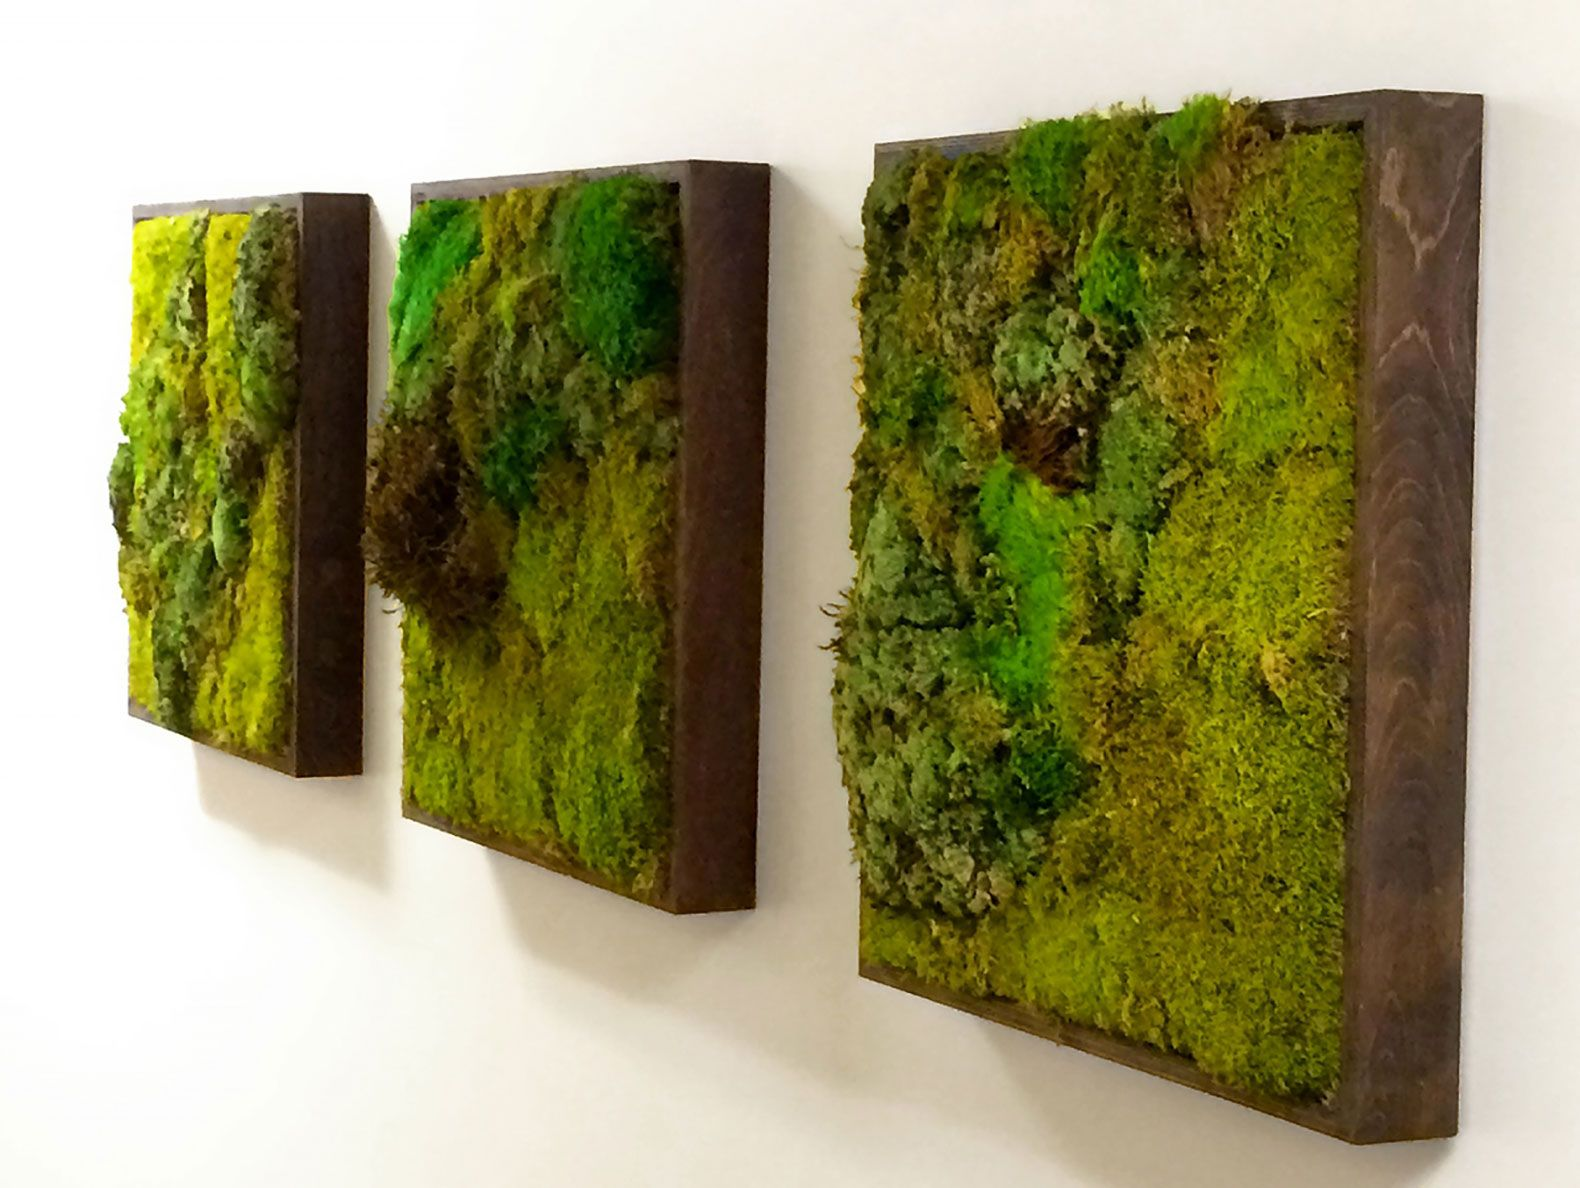 Moss Walls The Newest Trend In Biophilic Interiors